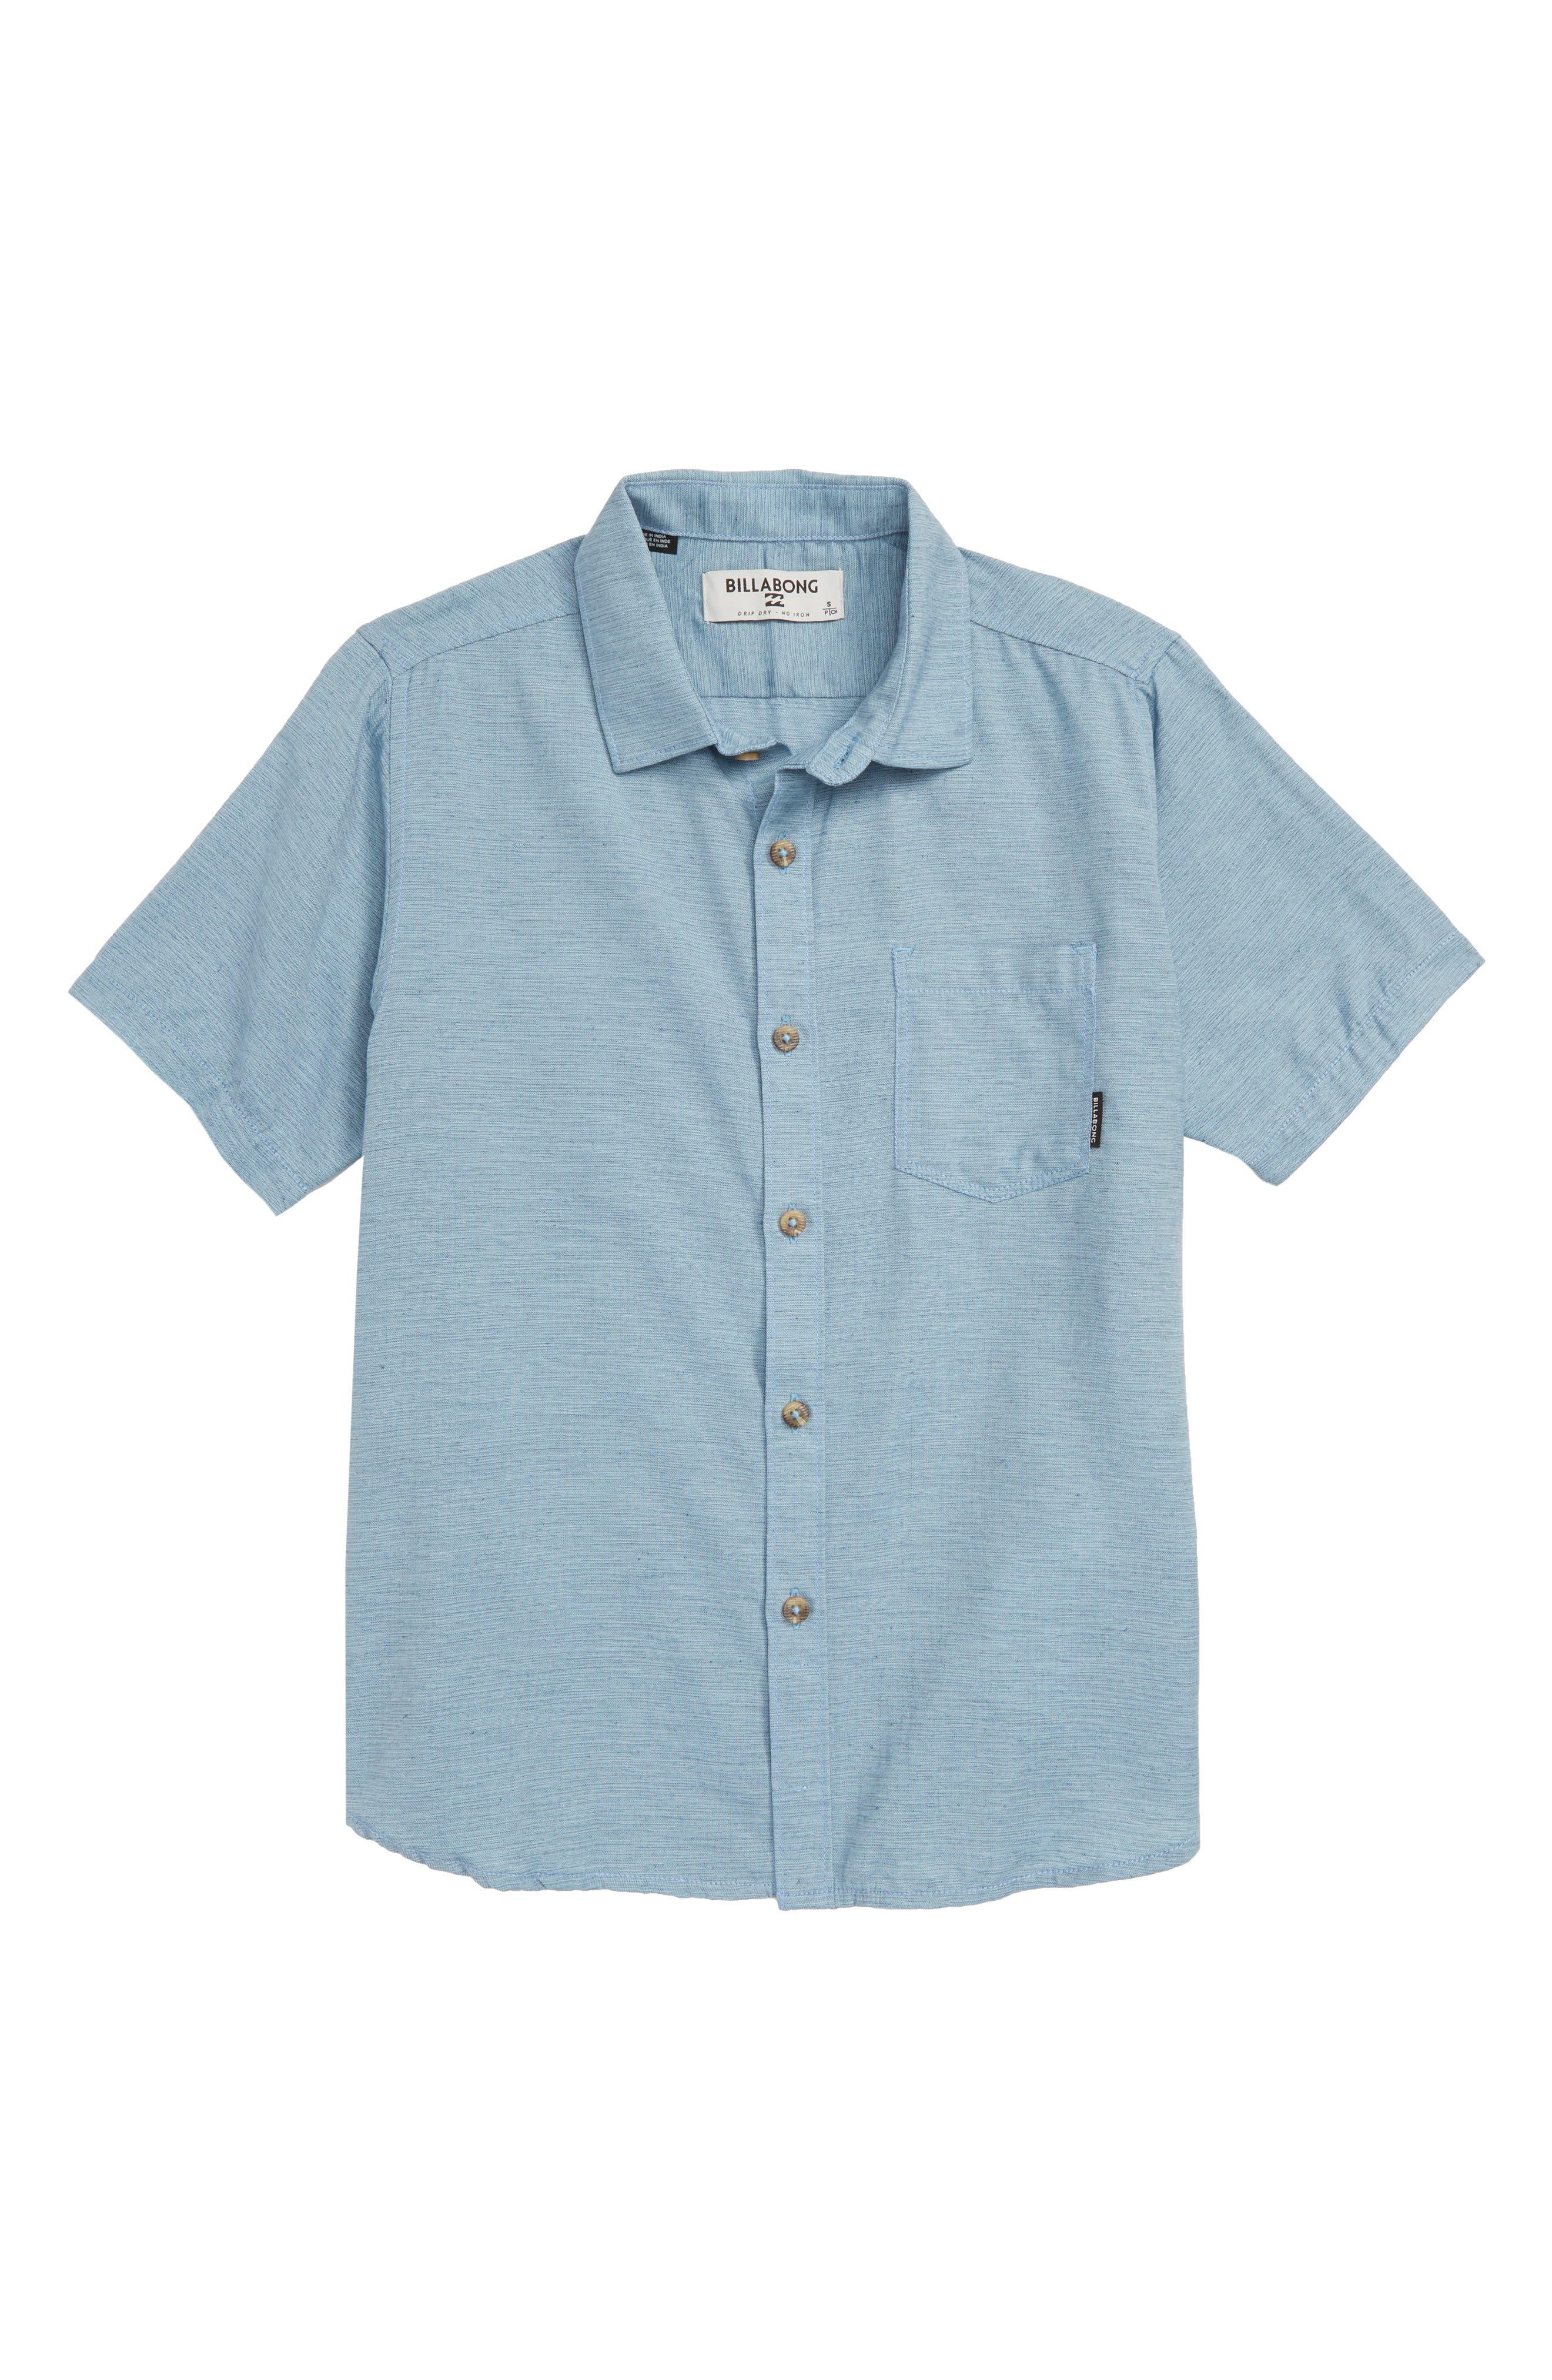 All Day Helix Woven Shirt,                             Main thumbnail 1, color,                             WASHED BLUE